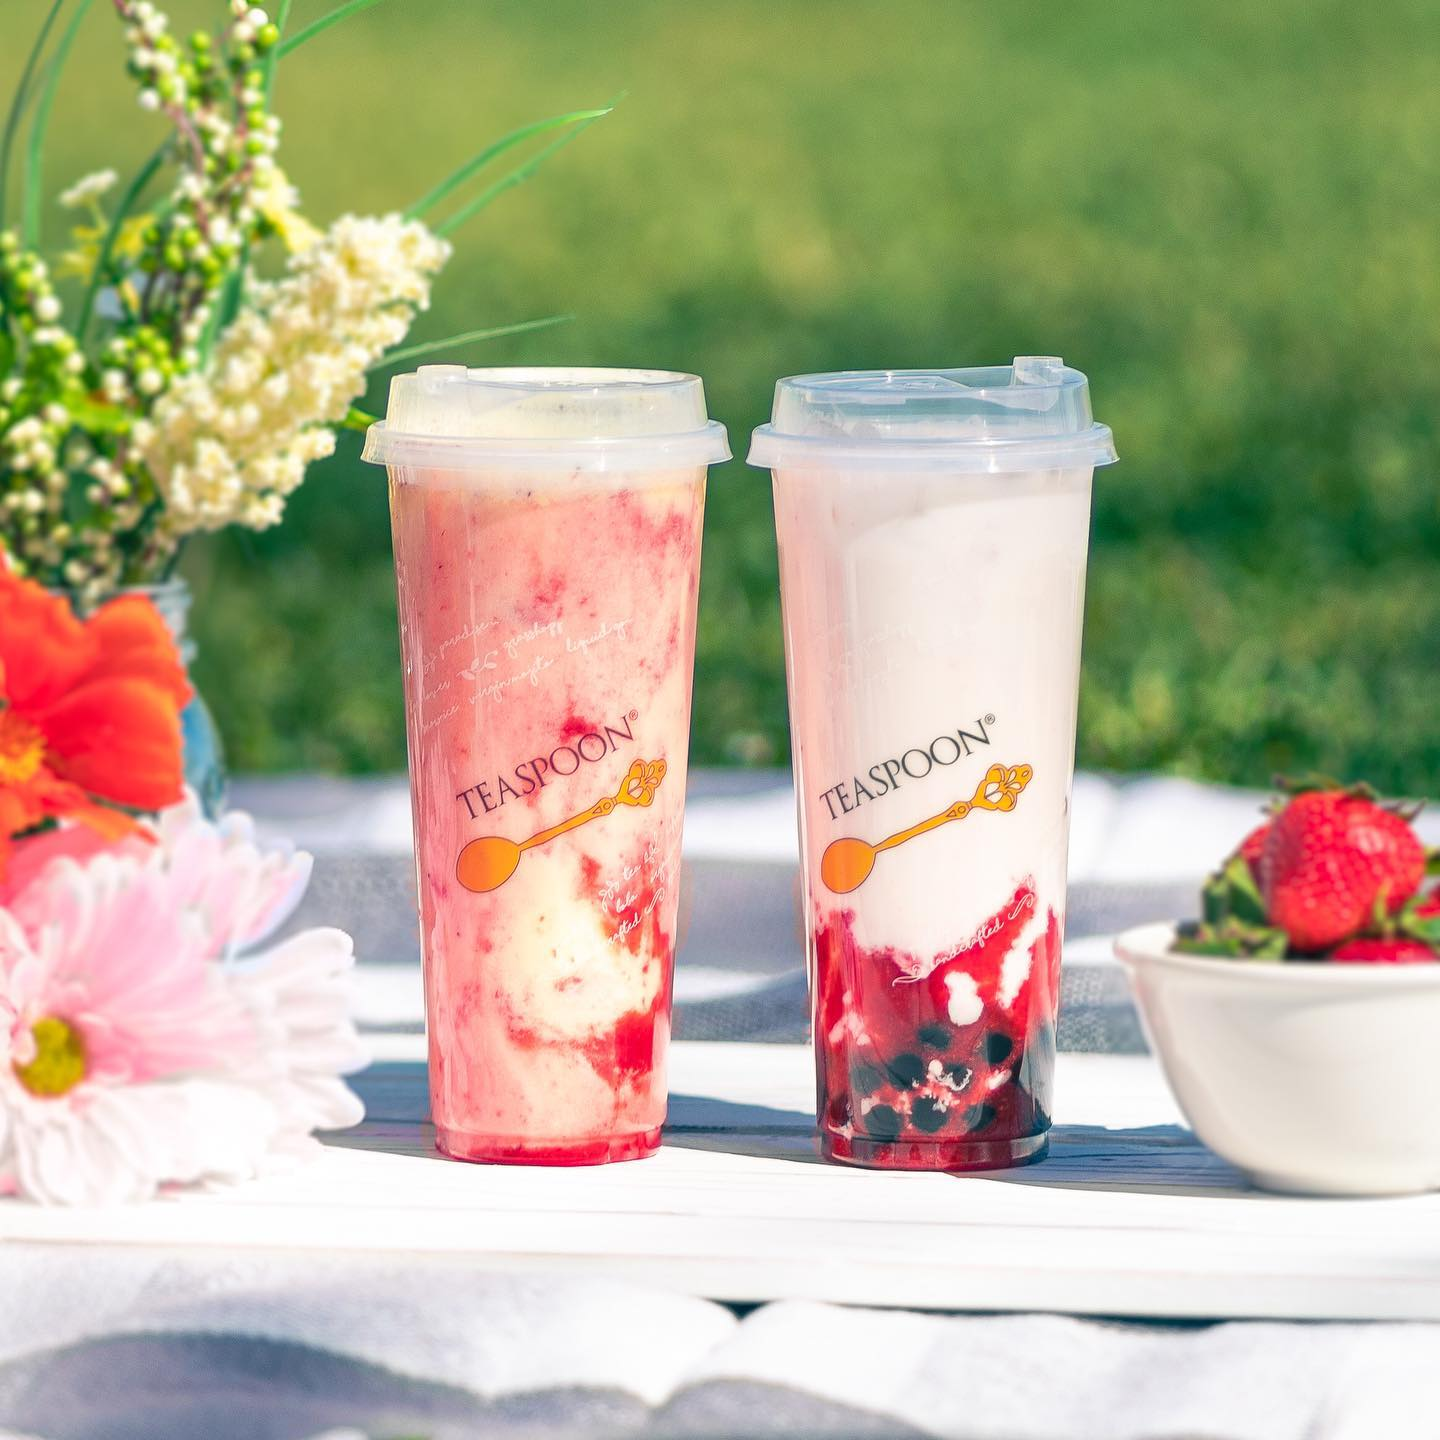 Silky strawberry and strawberry colada boba teas in clear glasses with flowers on one side and strawberries on the other